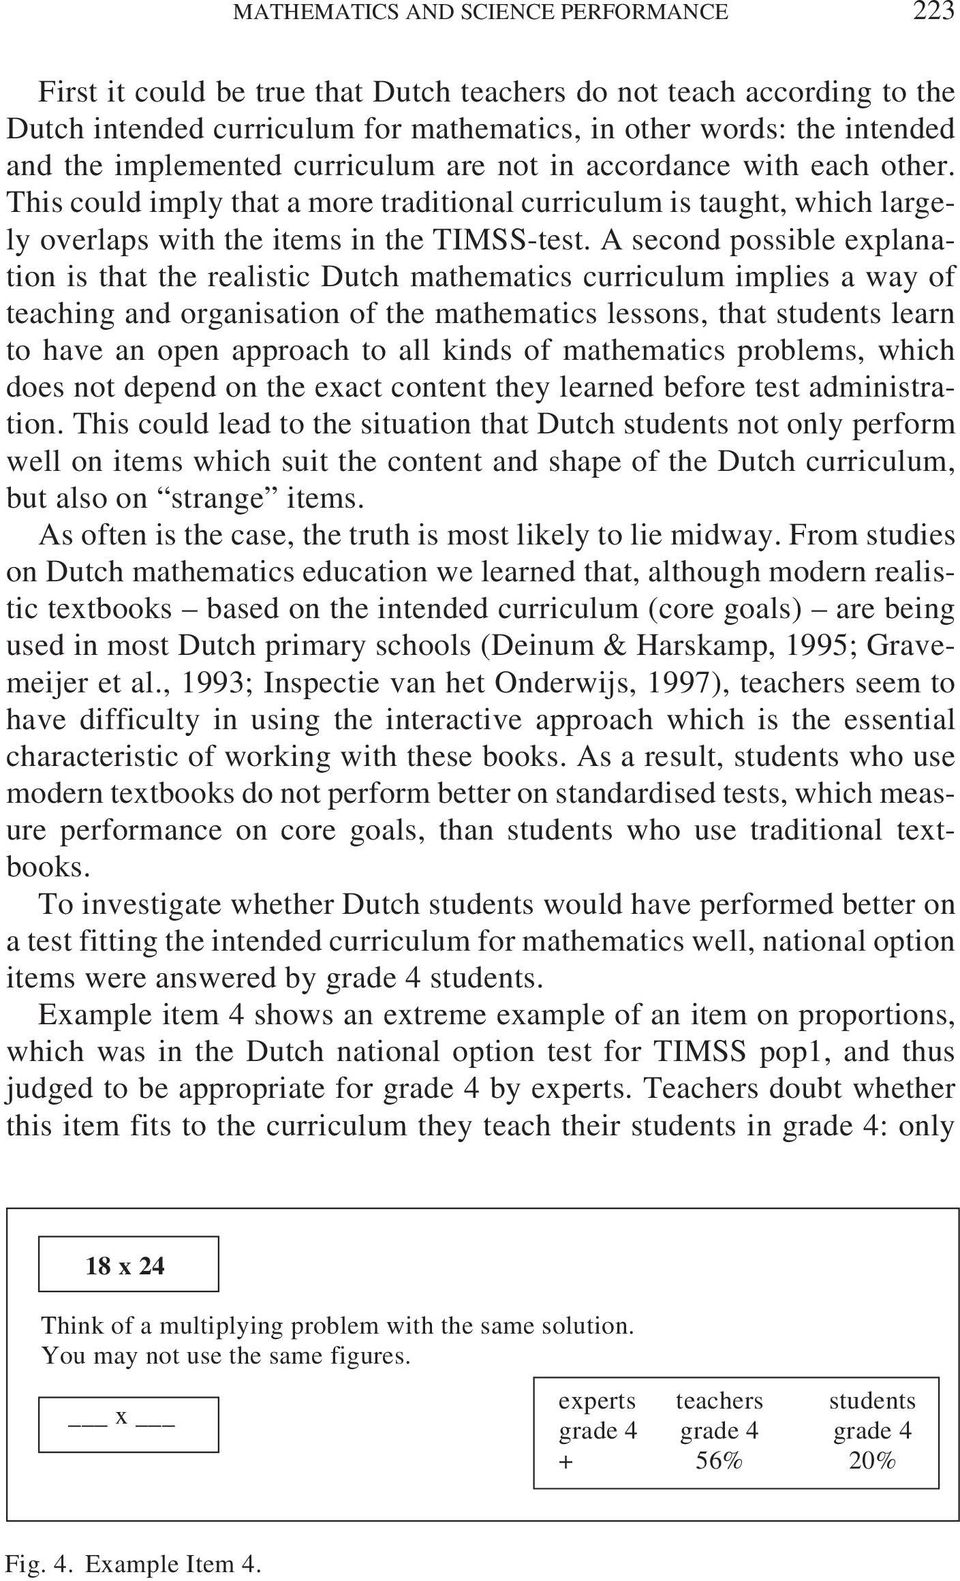 A second possible explanation is that the realistic Dutch mathematics curriculum implies a way of teaching and organisation of the mathematics lessons, that students learn to have an open approach to